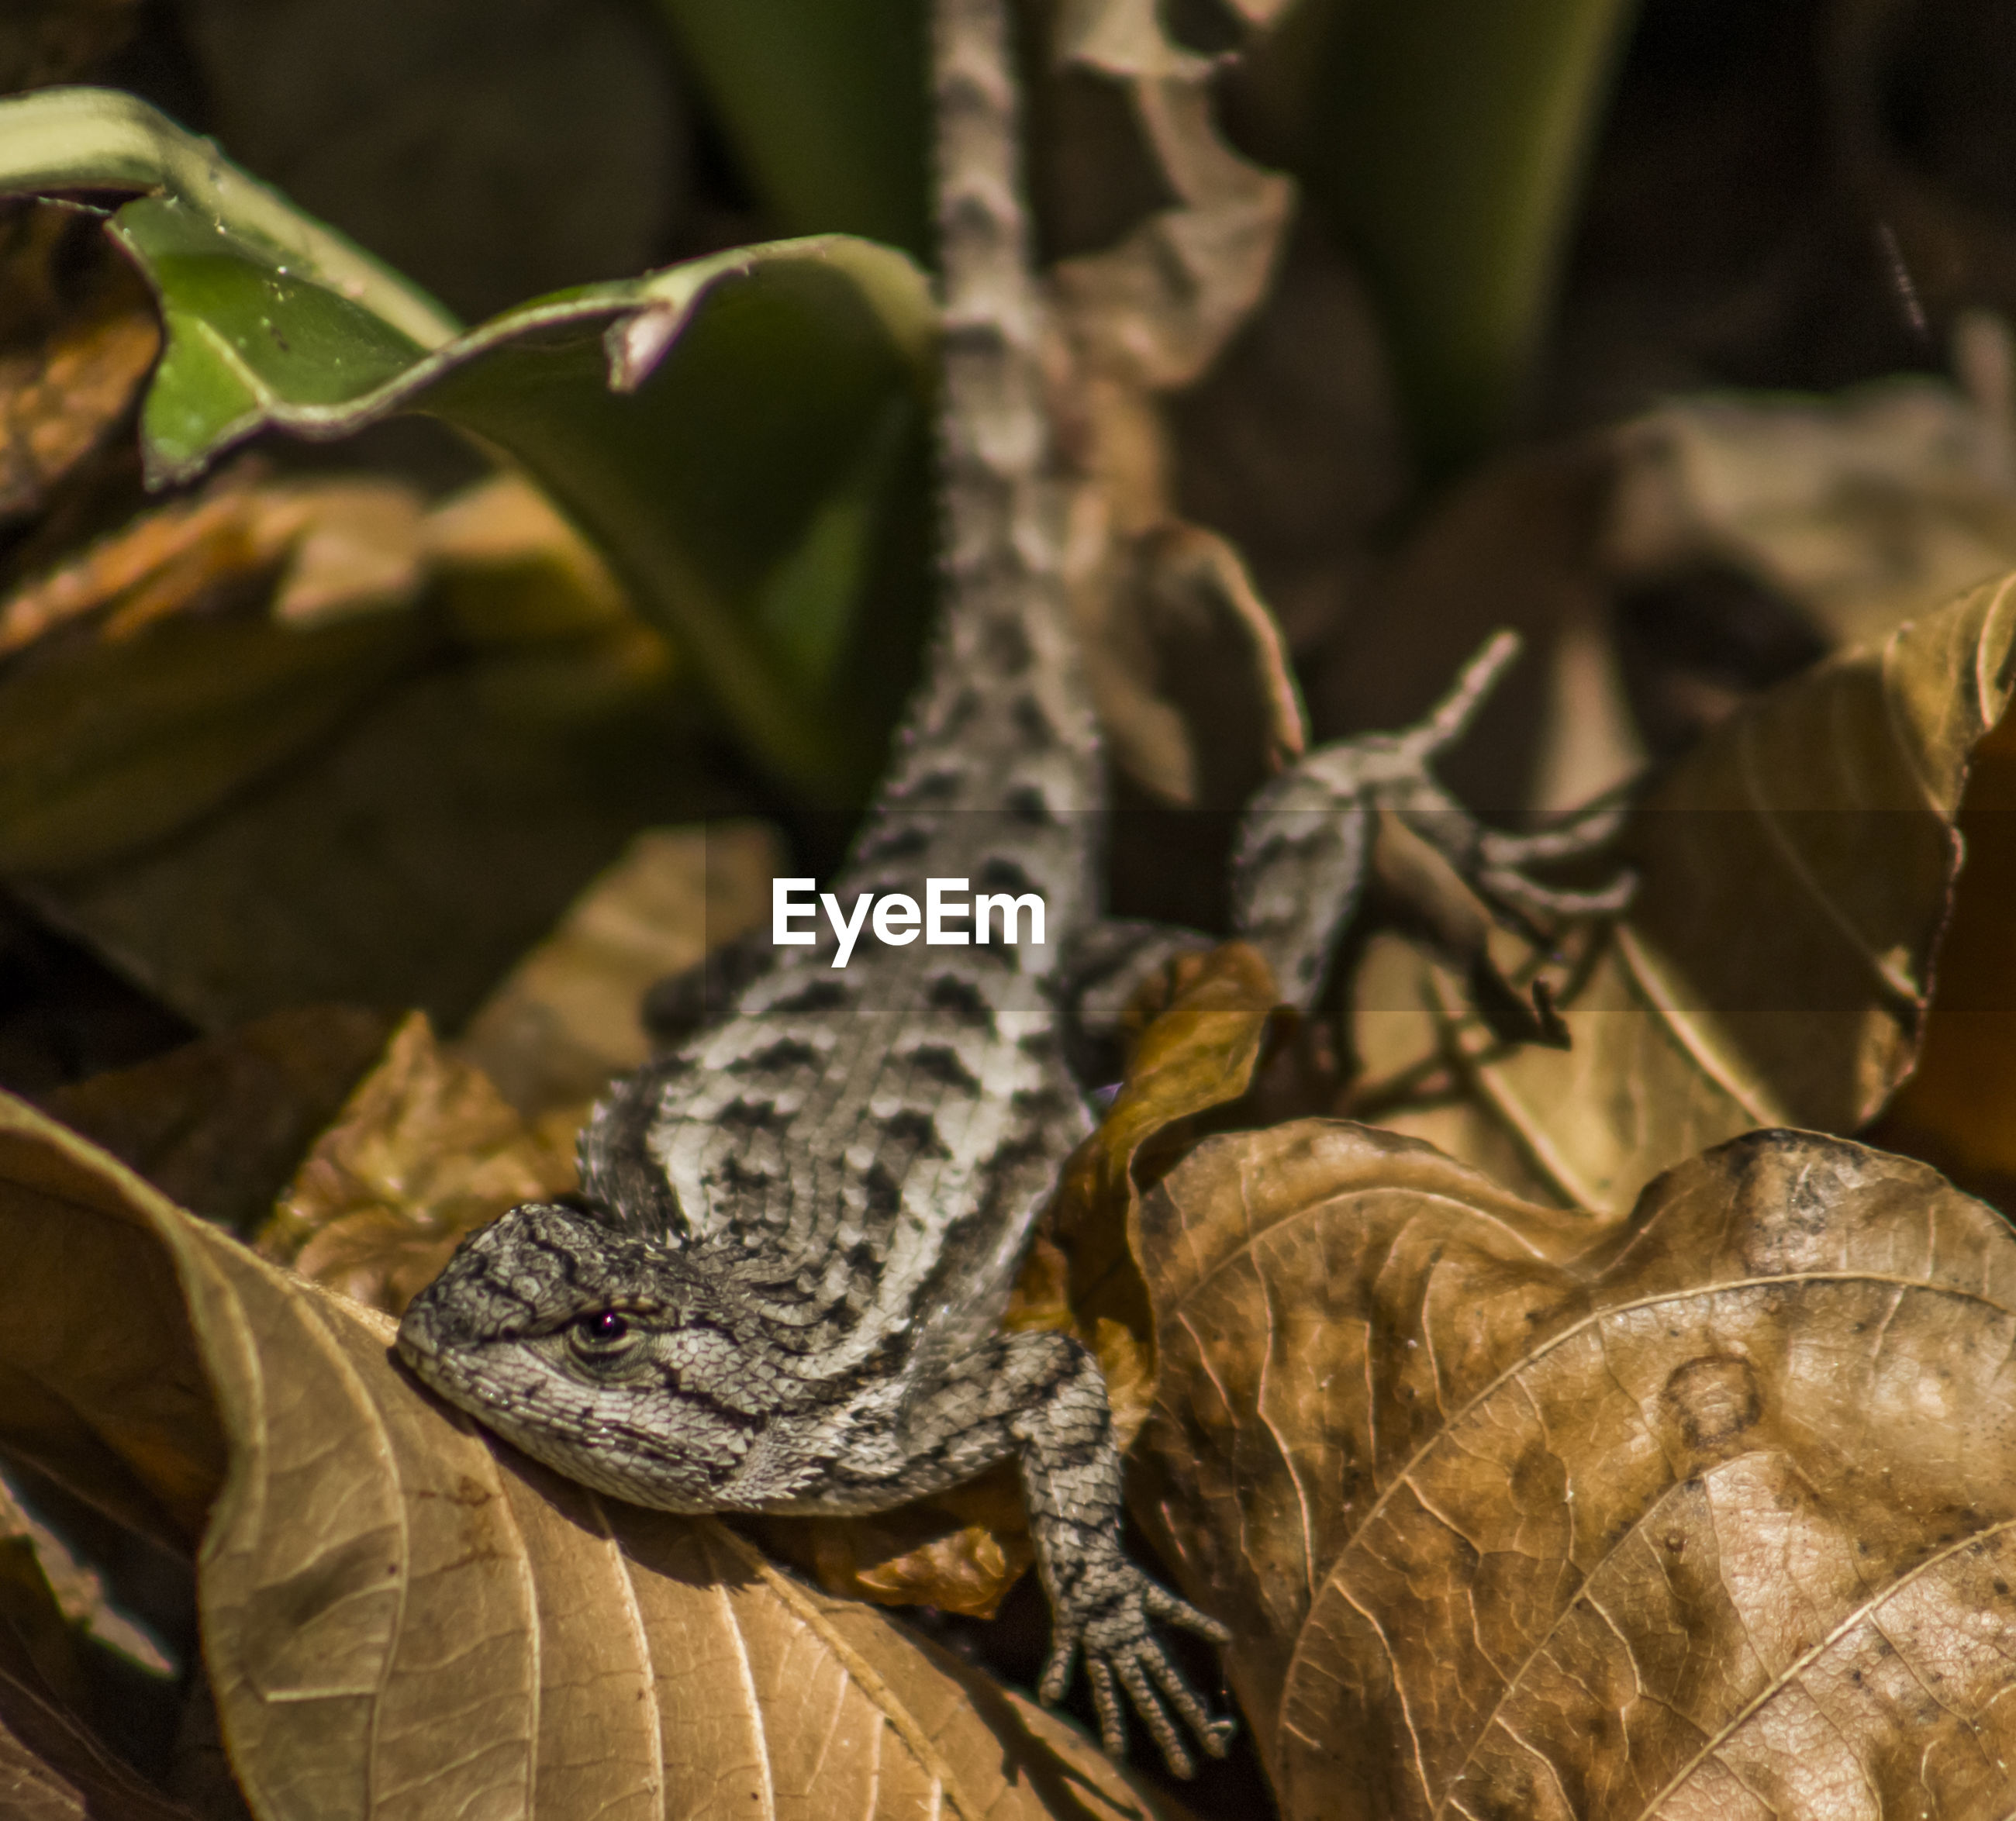 High angle view of lizard amidst dry leaves